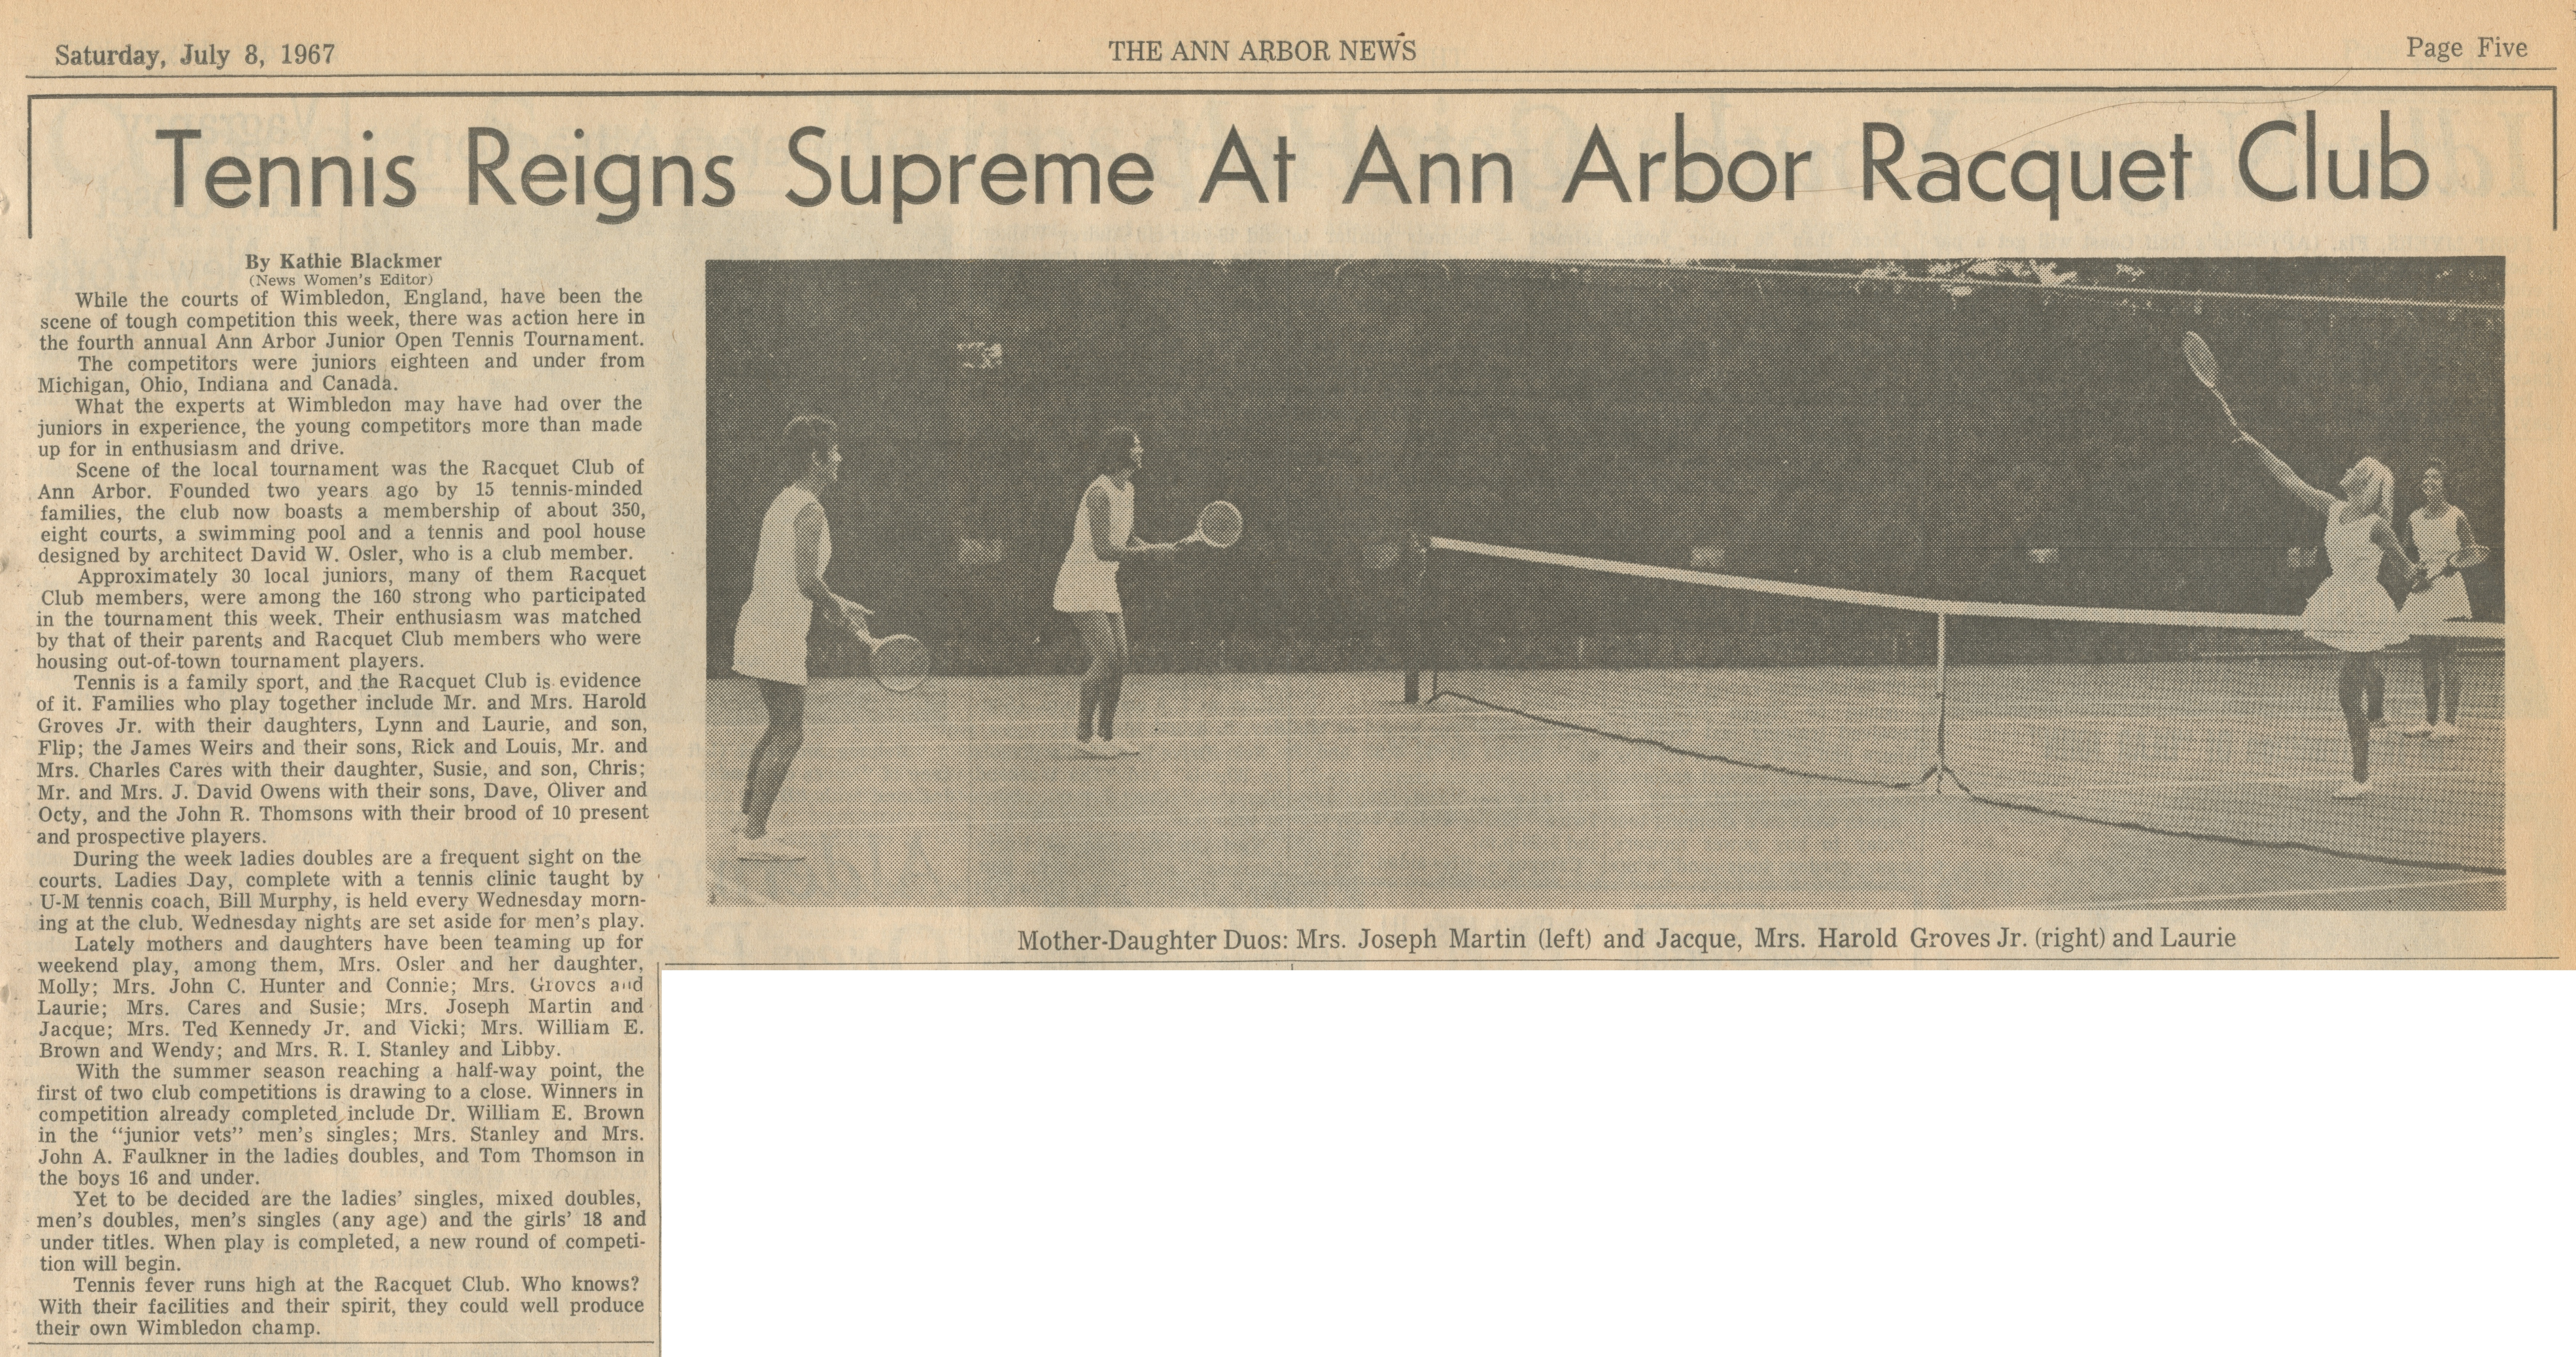 Tennis Reigns Supreme At Ann Arbor Racquet Club image